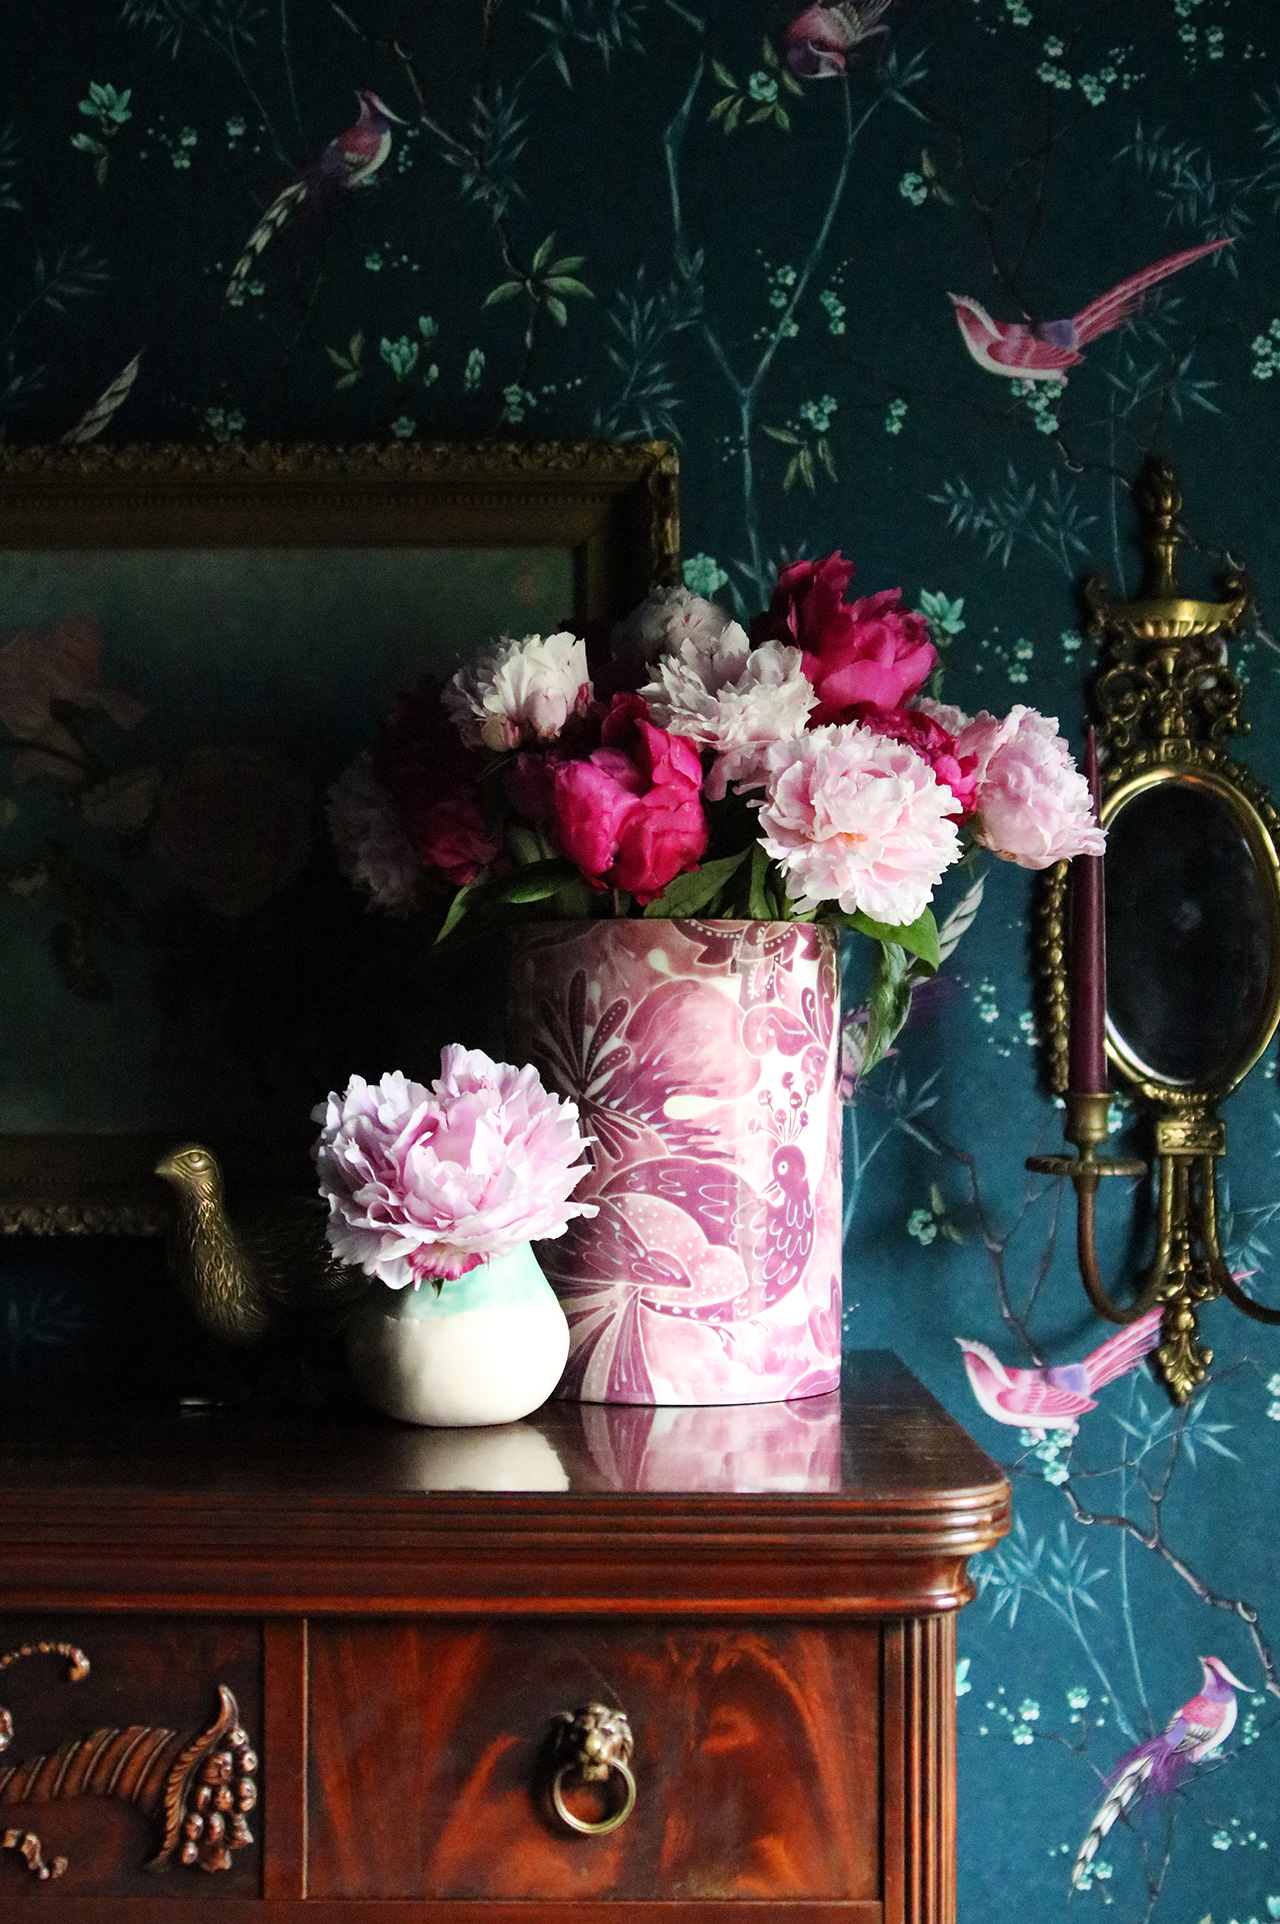 floral vases with peonies on antique dresser